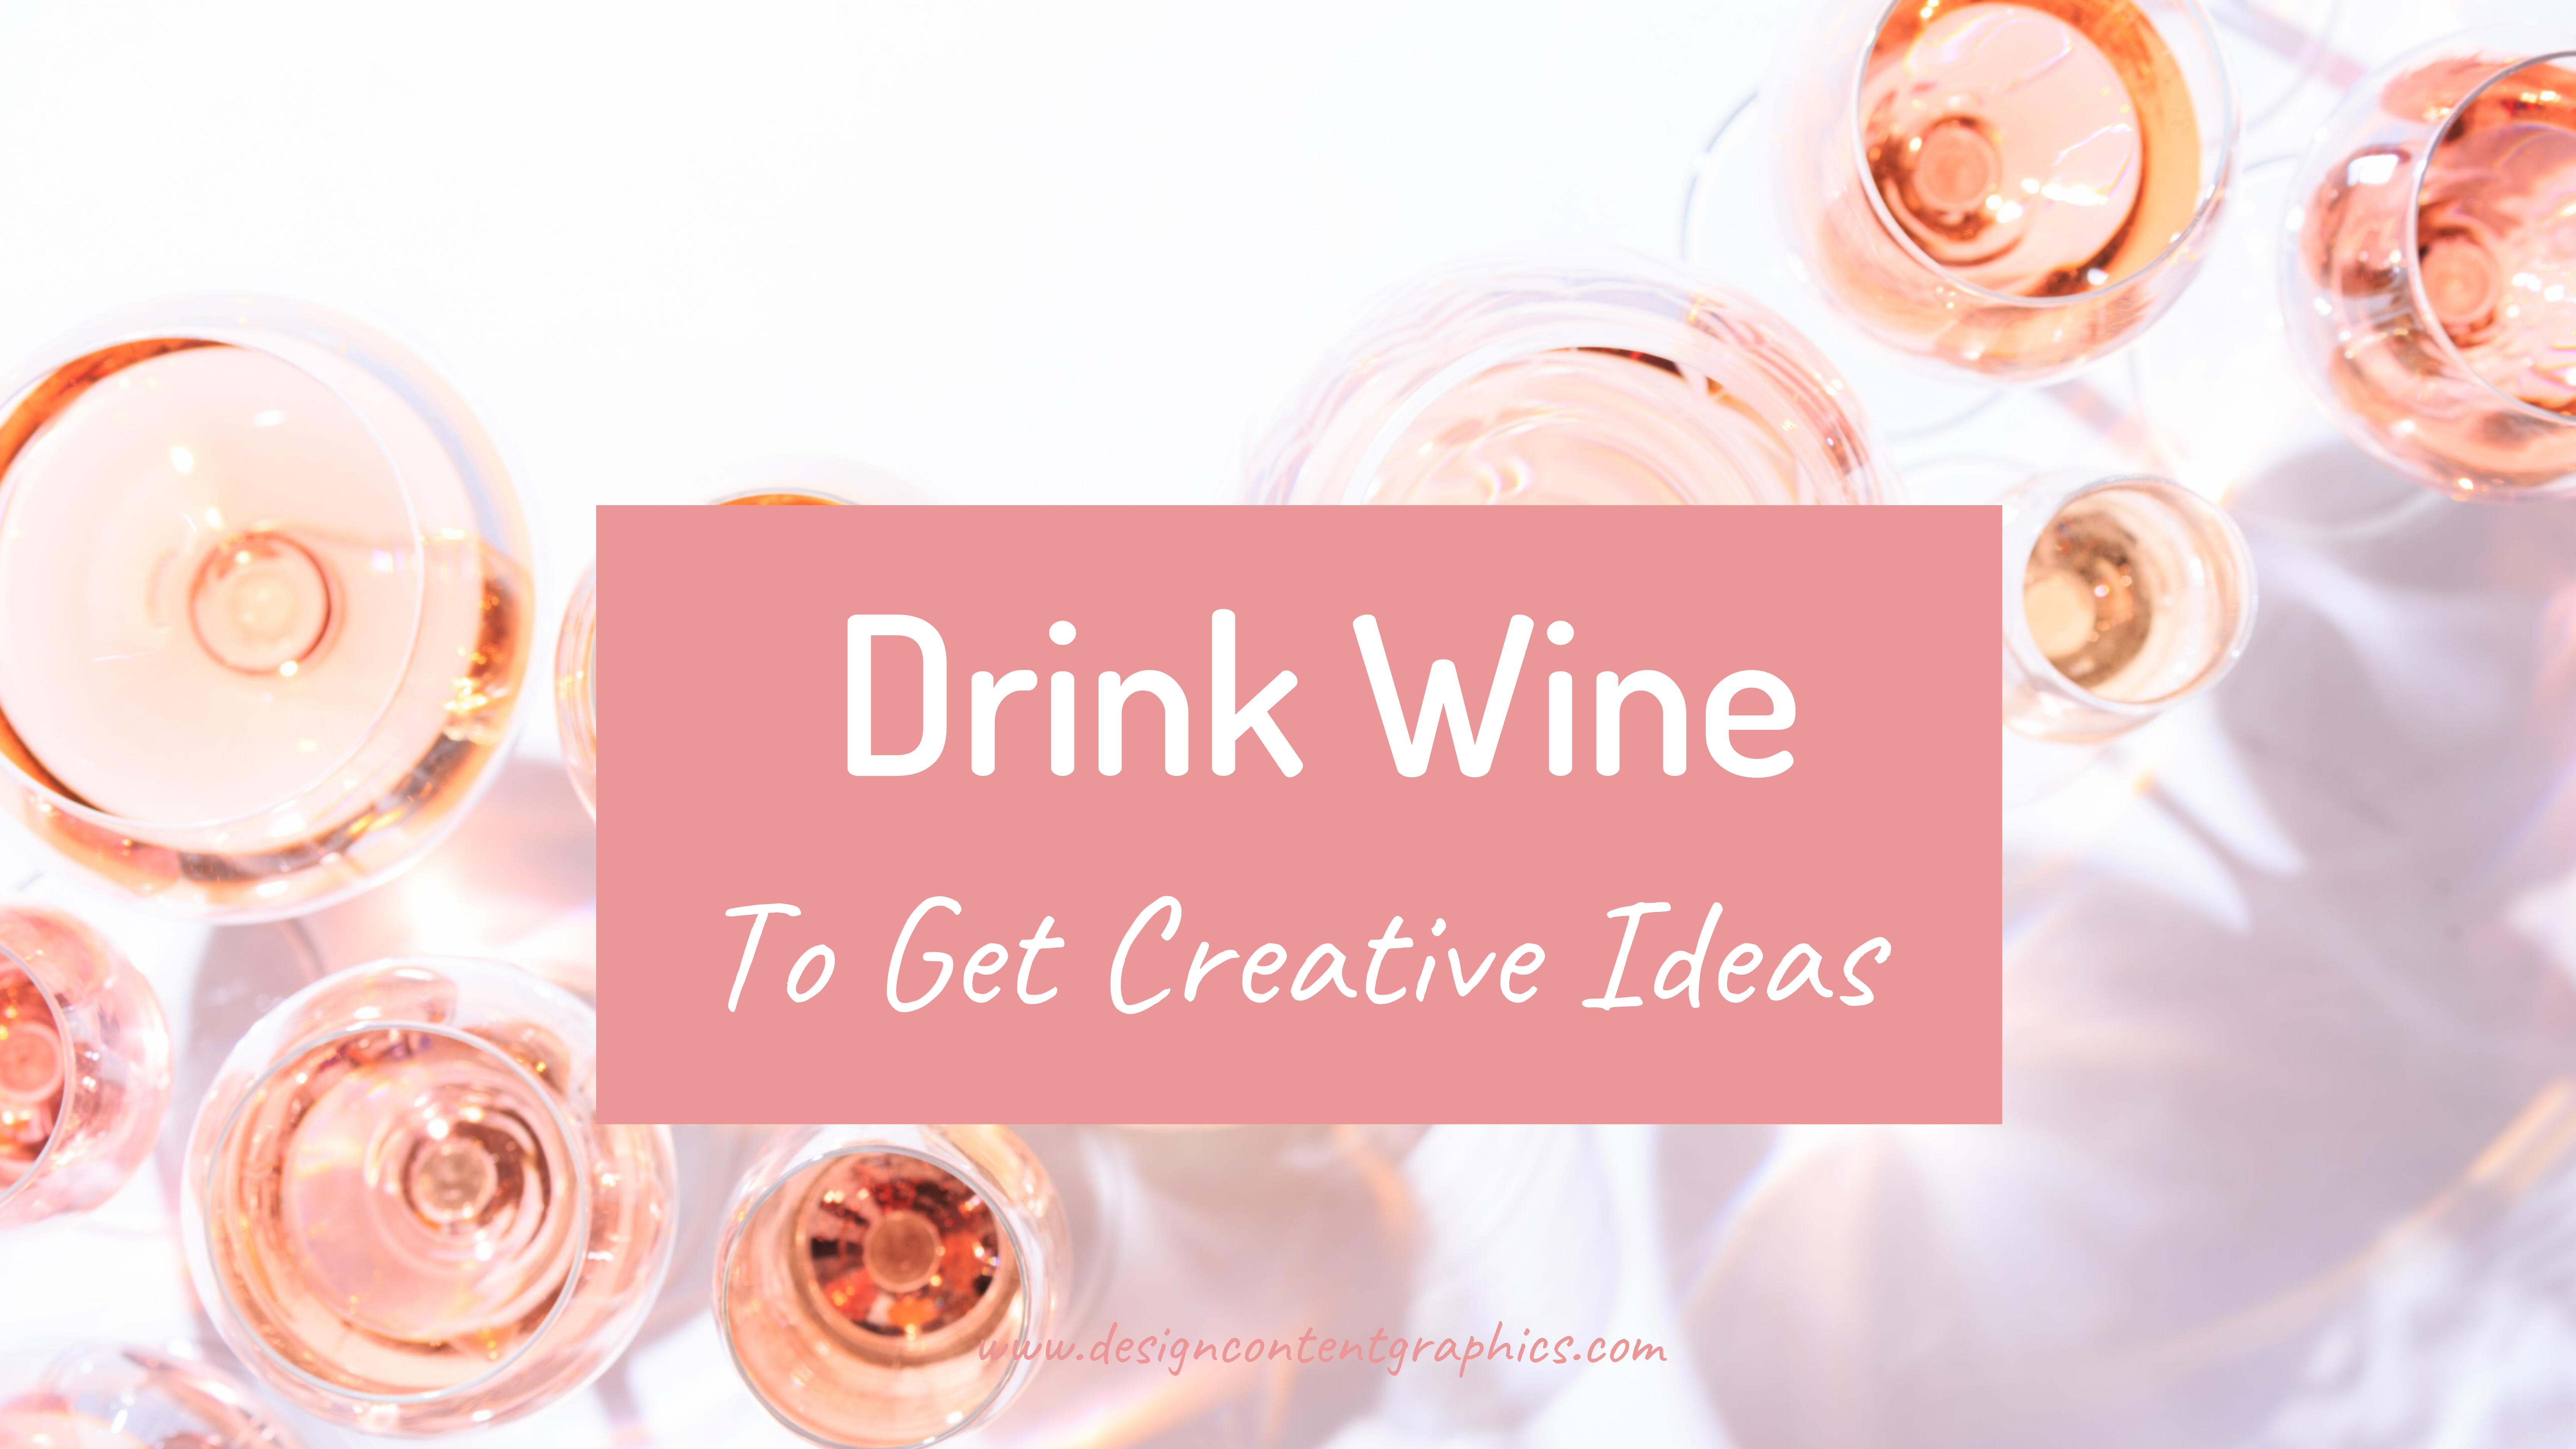 Drink Wine For Creative Ideas